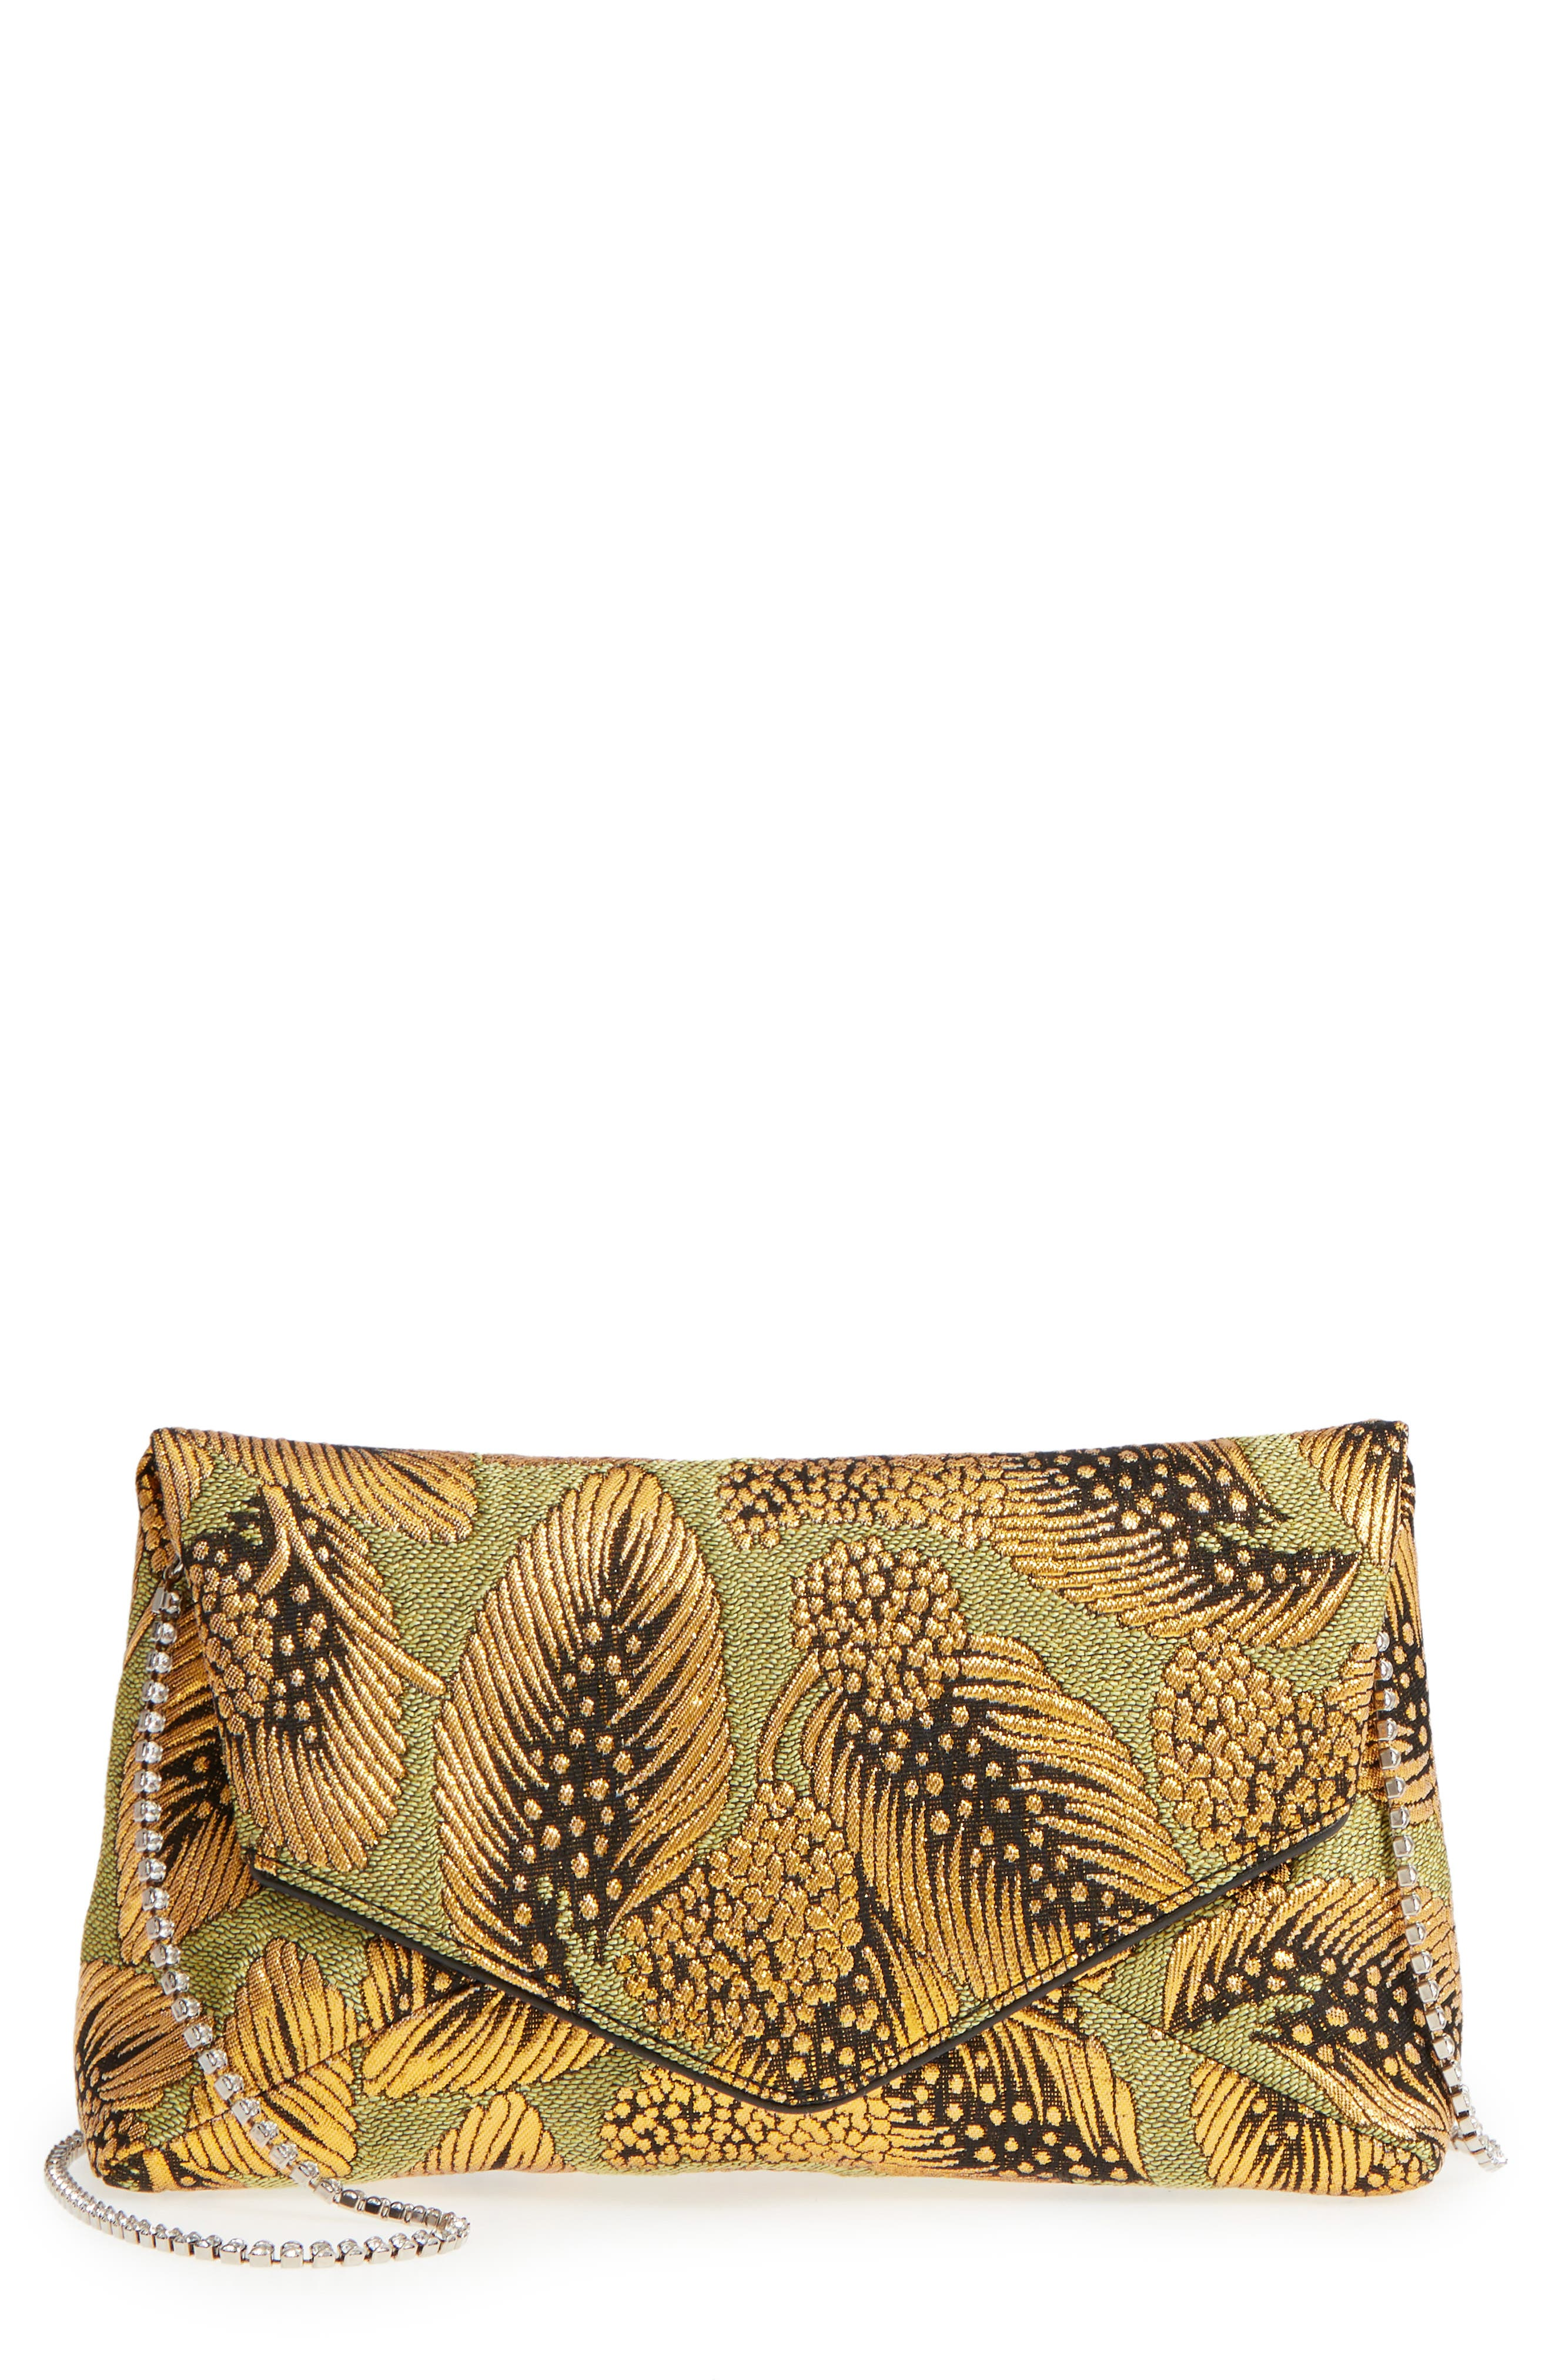 Dries van Noten Small Metallic Feather Envelope Clutch